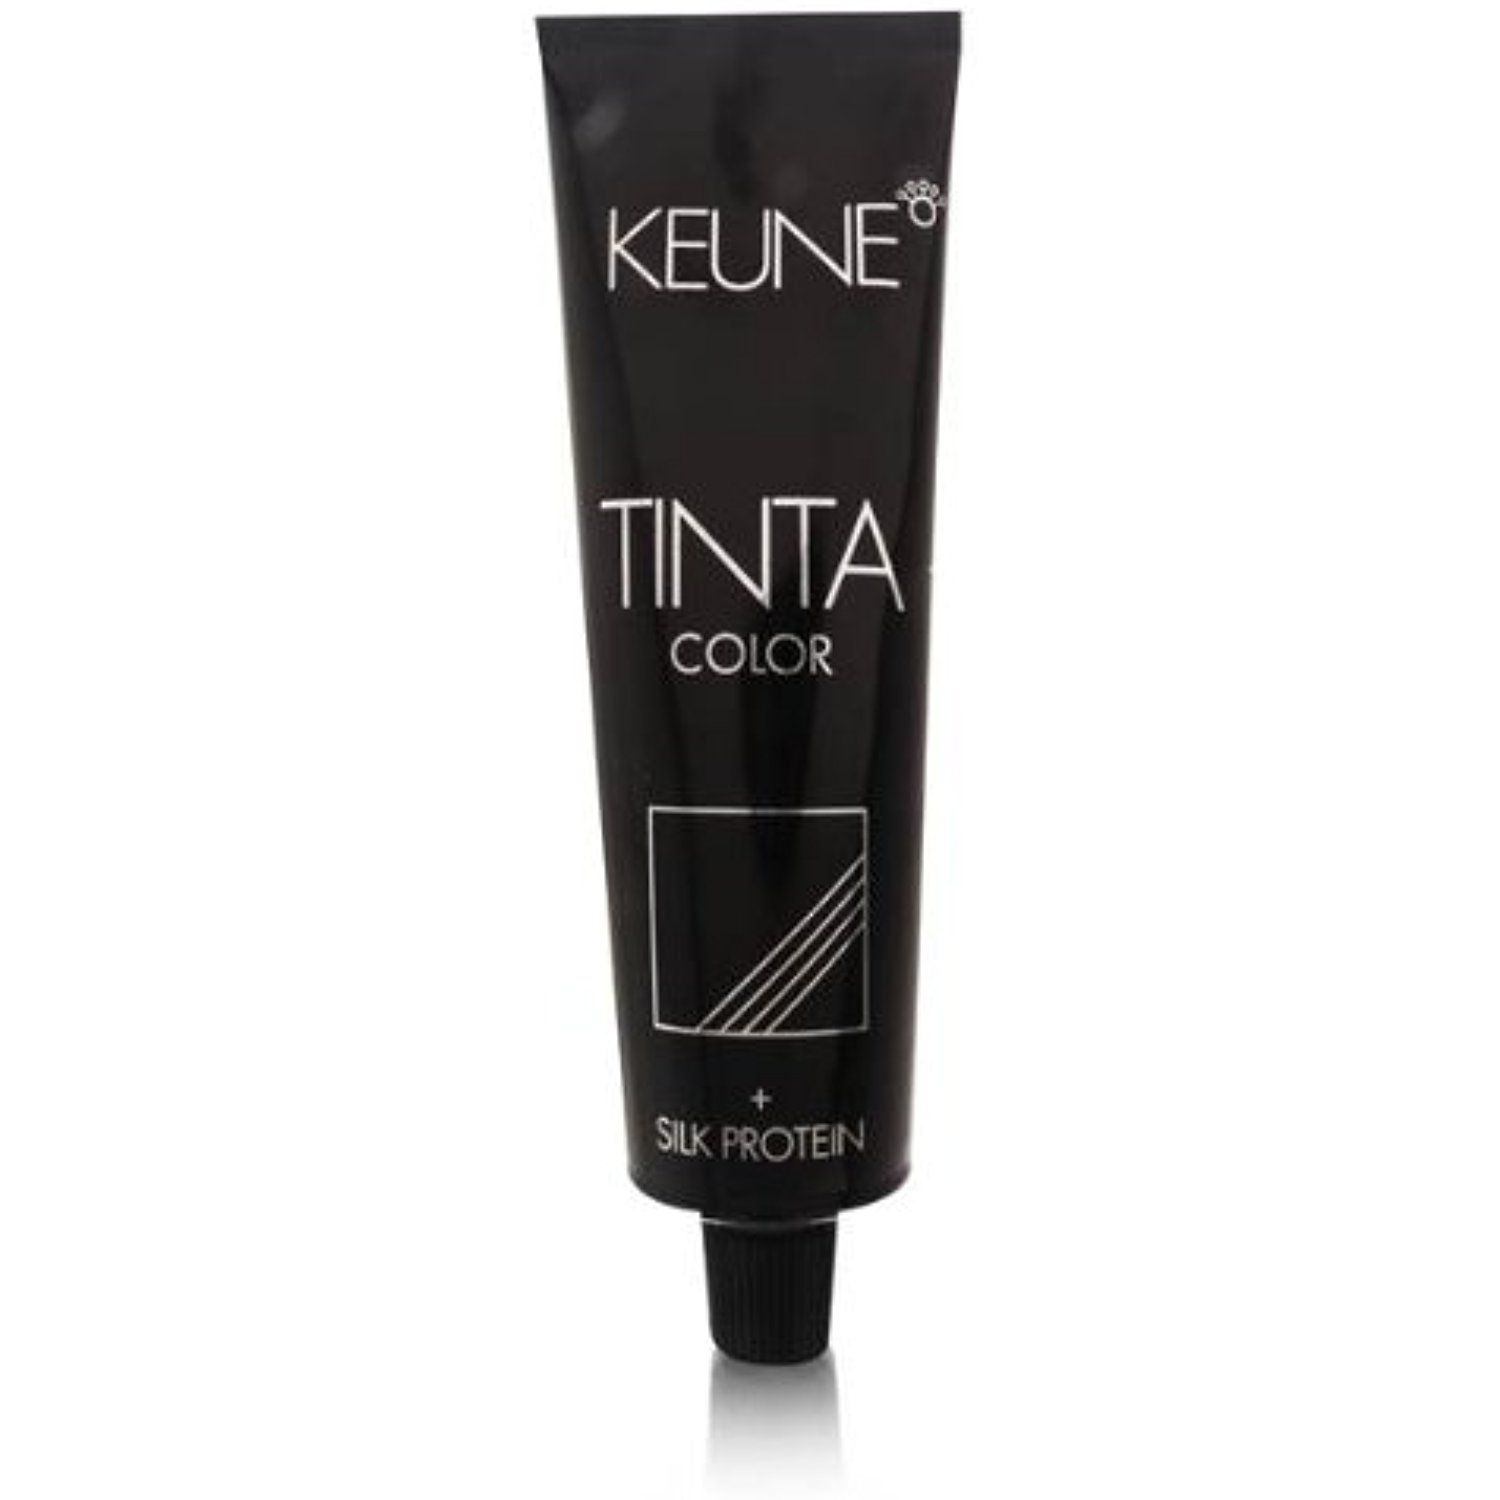 Keune Tinta Color Tube Haircoloringproducts Hair Coloring